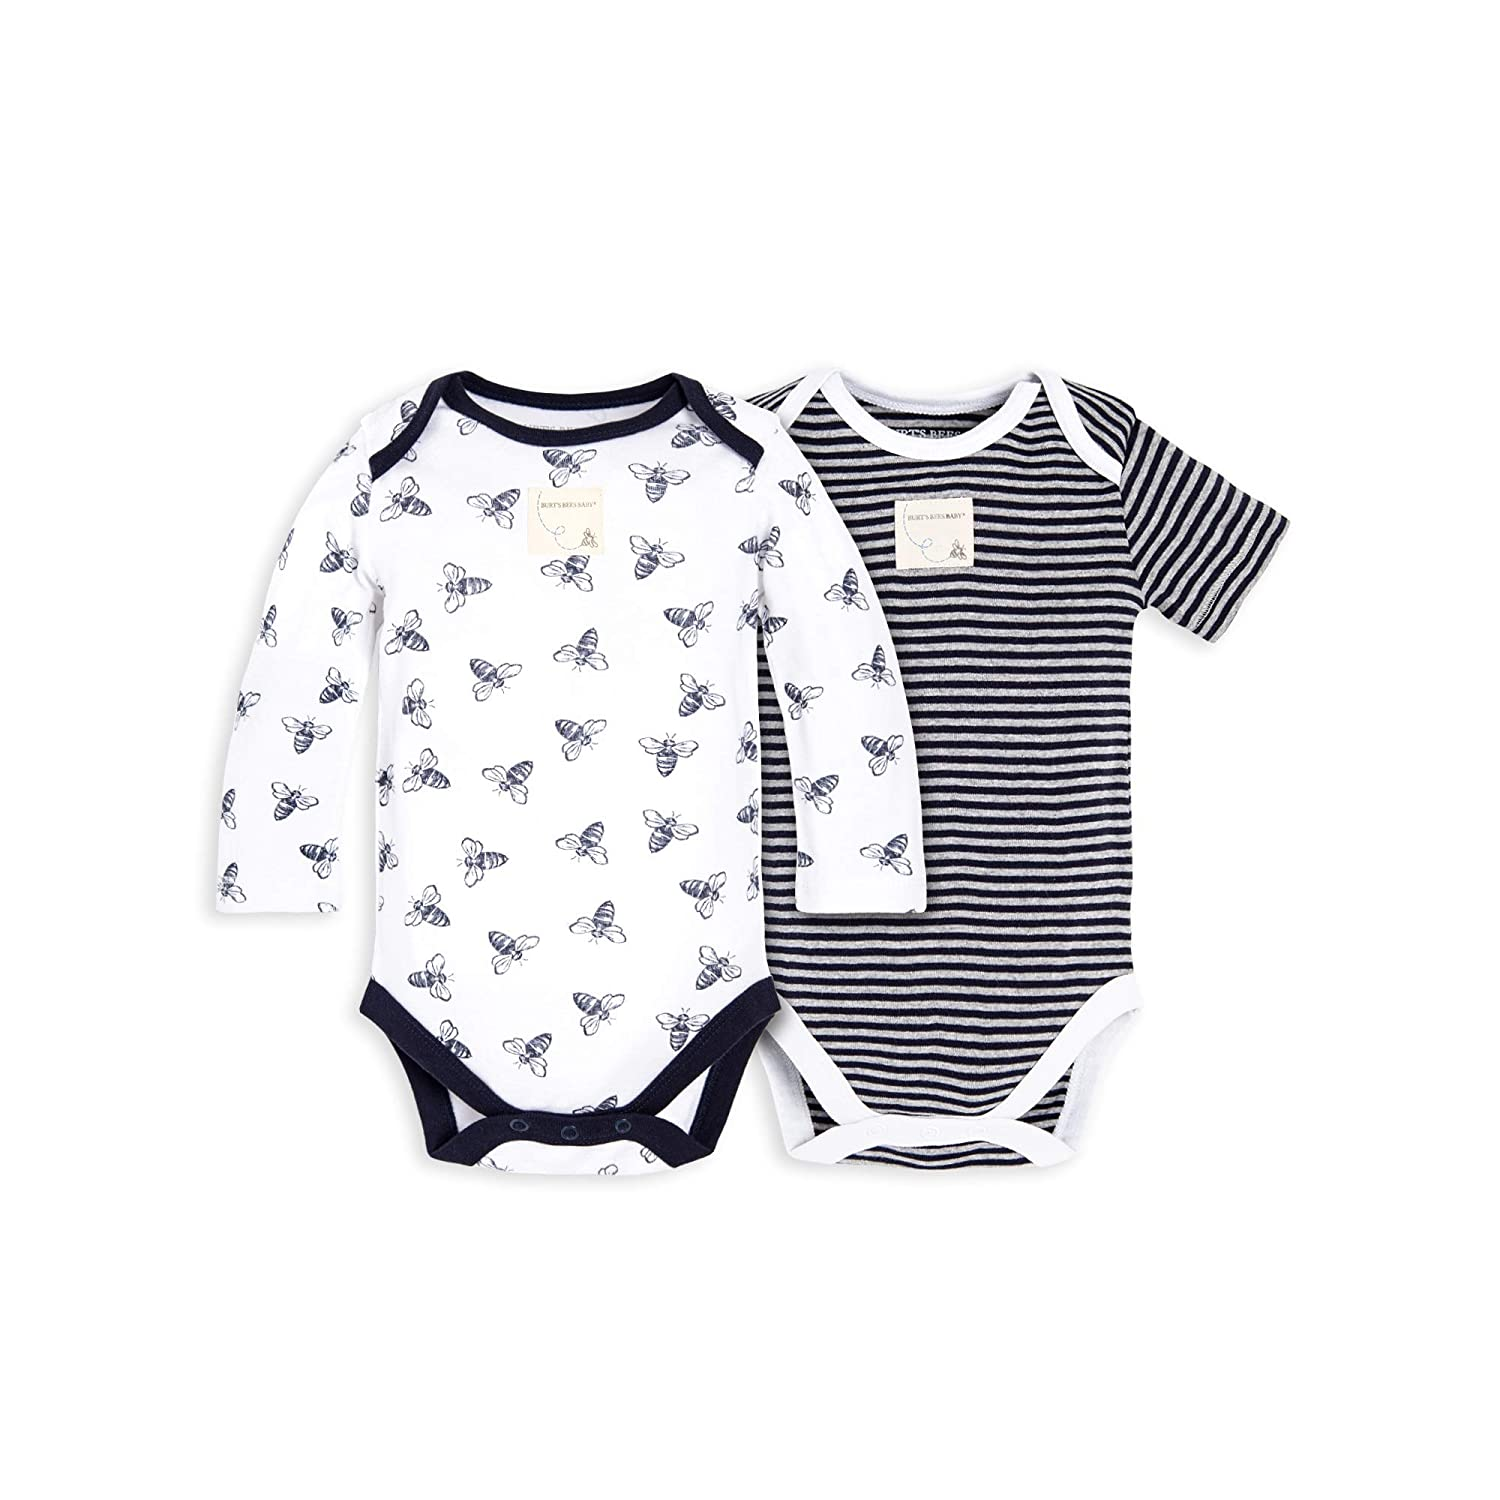 Burt's Bees Baby - Unisex Baby Bodysuits, 2-Pack Organic Cotton Short & Long Sleeve One-Pieces